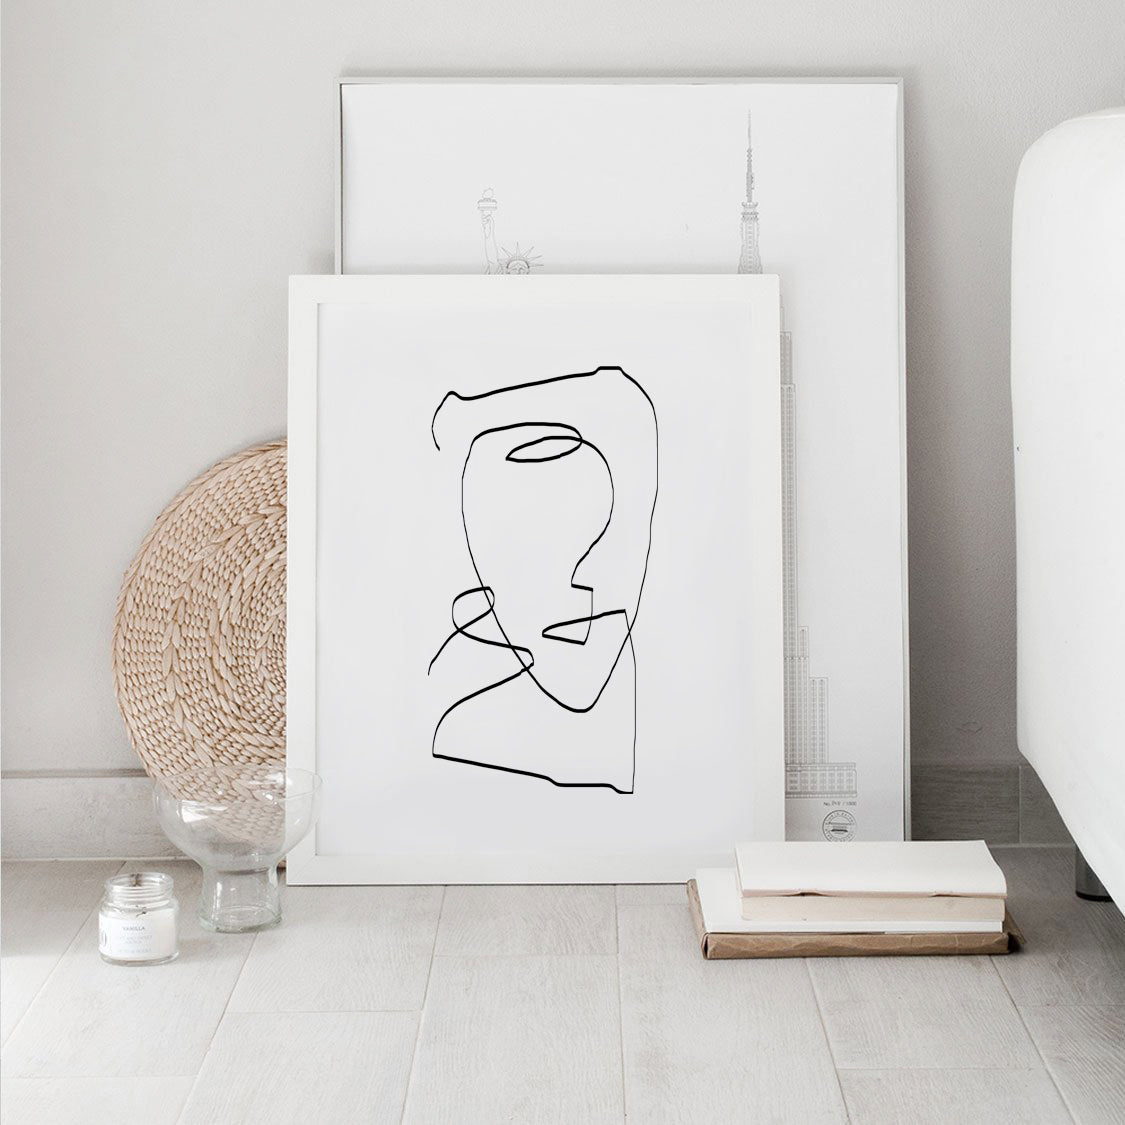 The continuous line abstract by The Miuus Studio